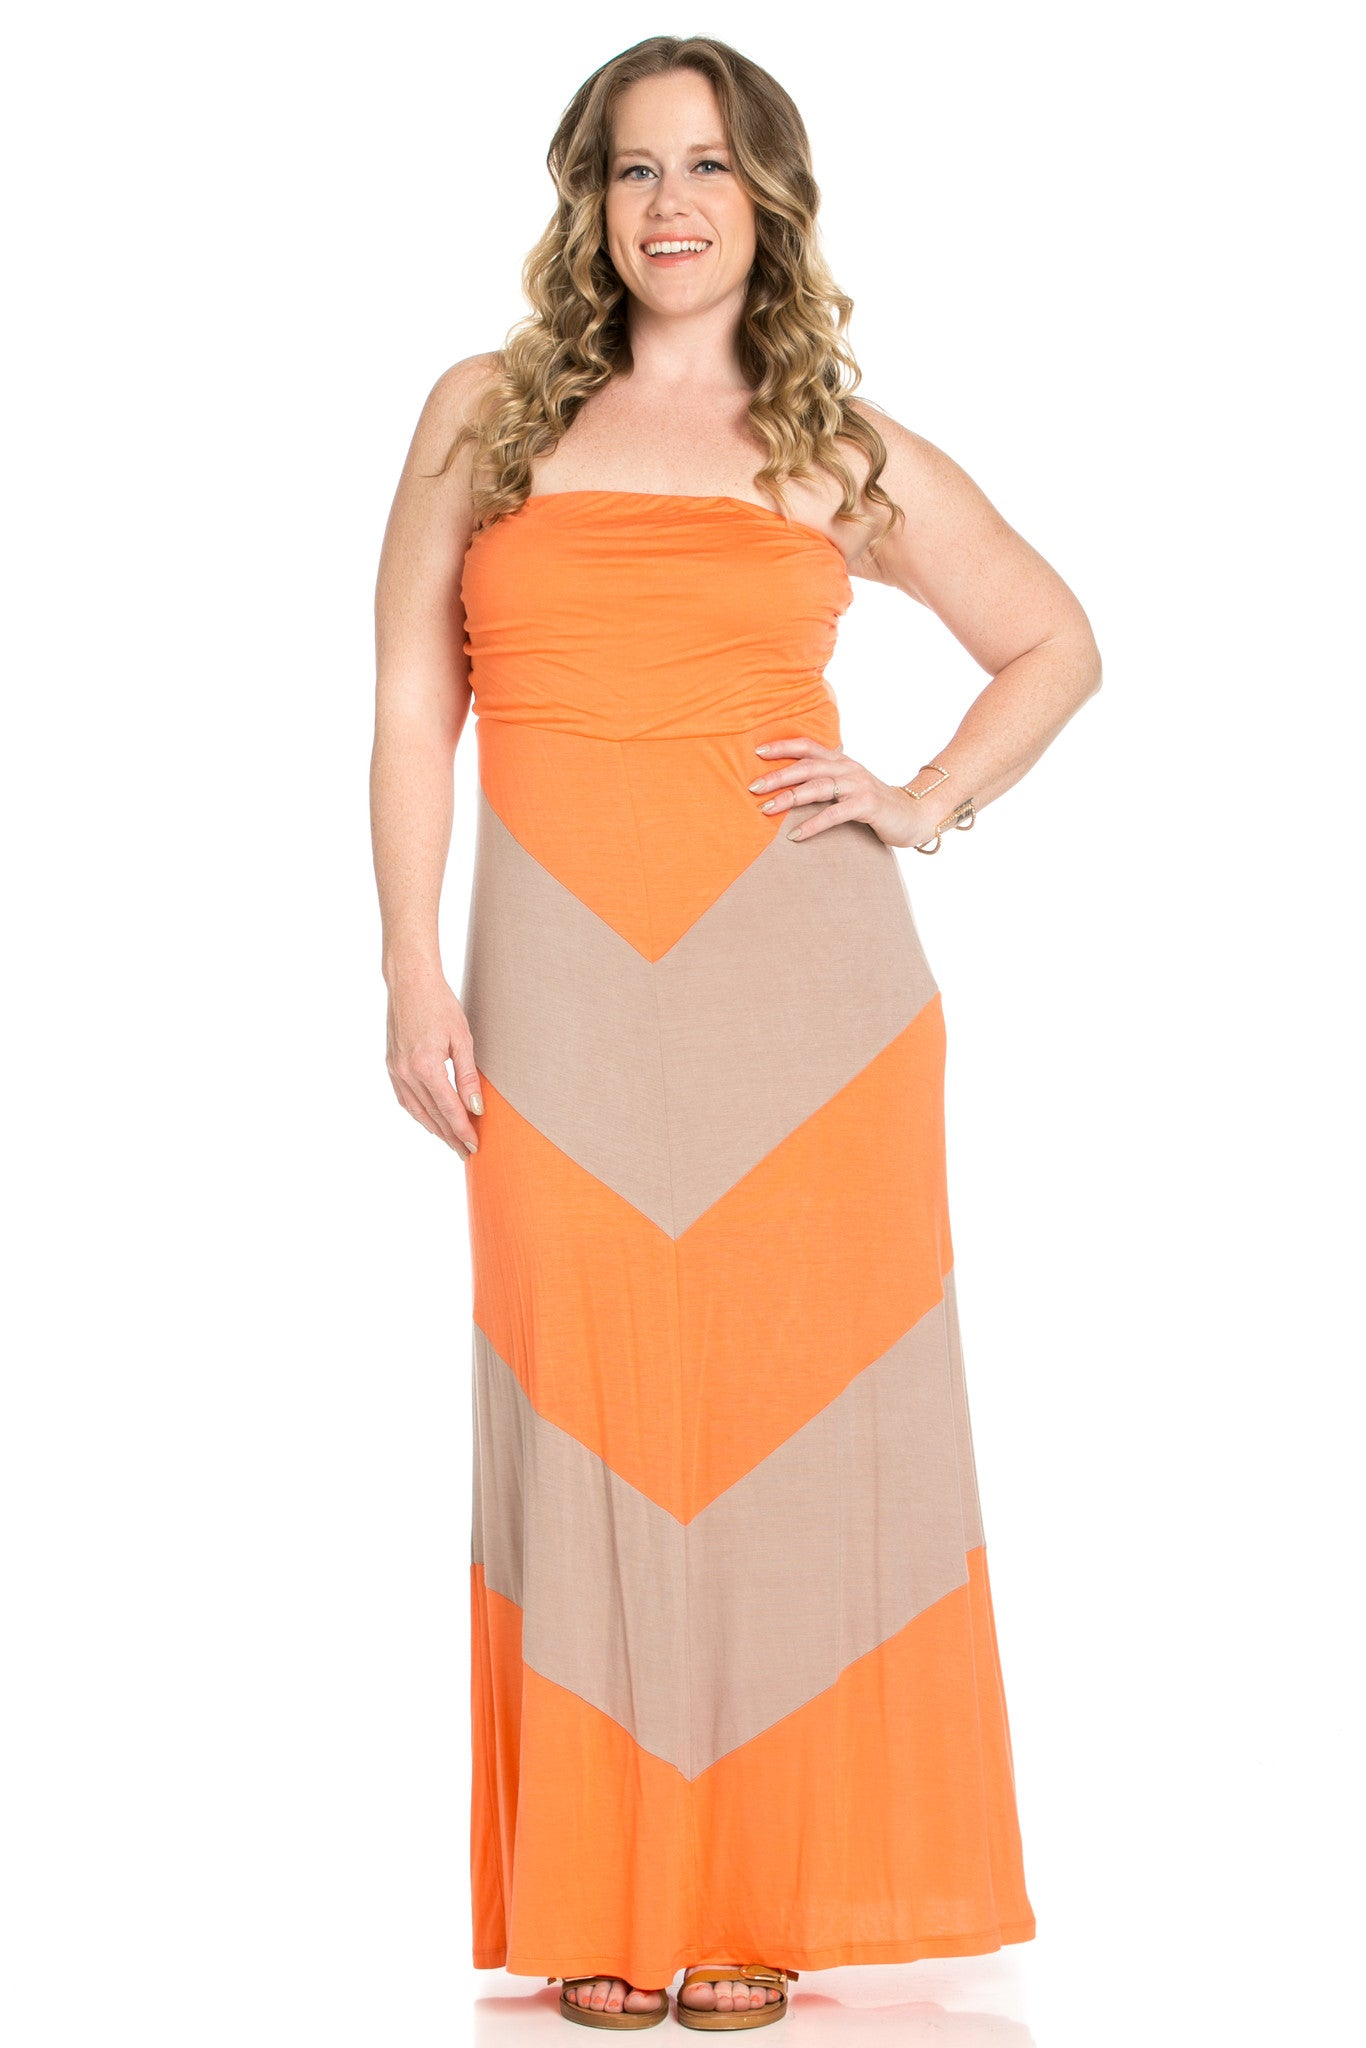 Strapless Long tube Dress Peach/Mocha Cause You're Chevron - Dresses - My Yuccie - 1